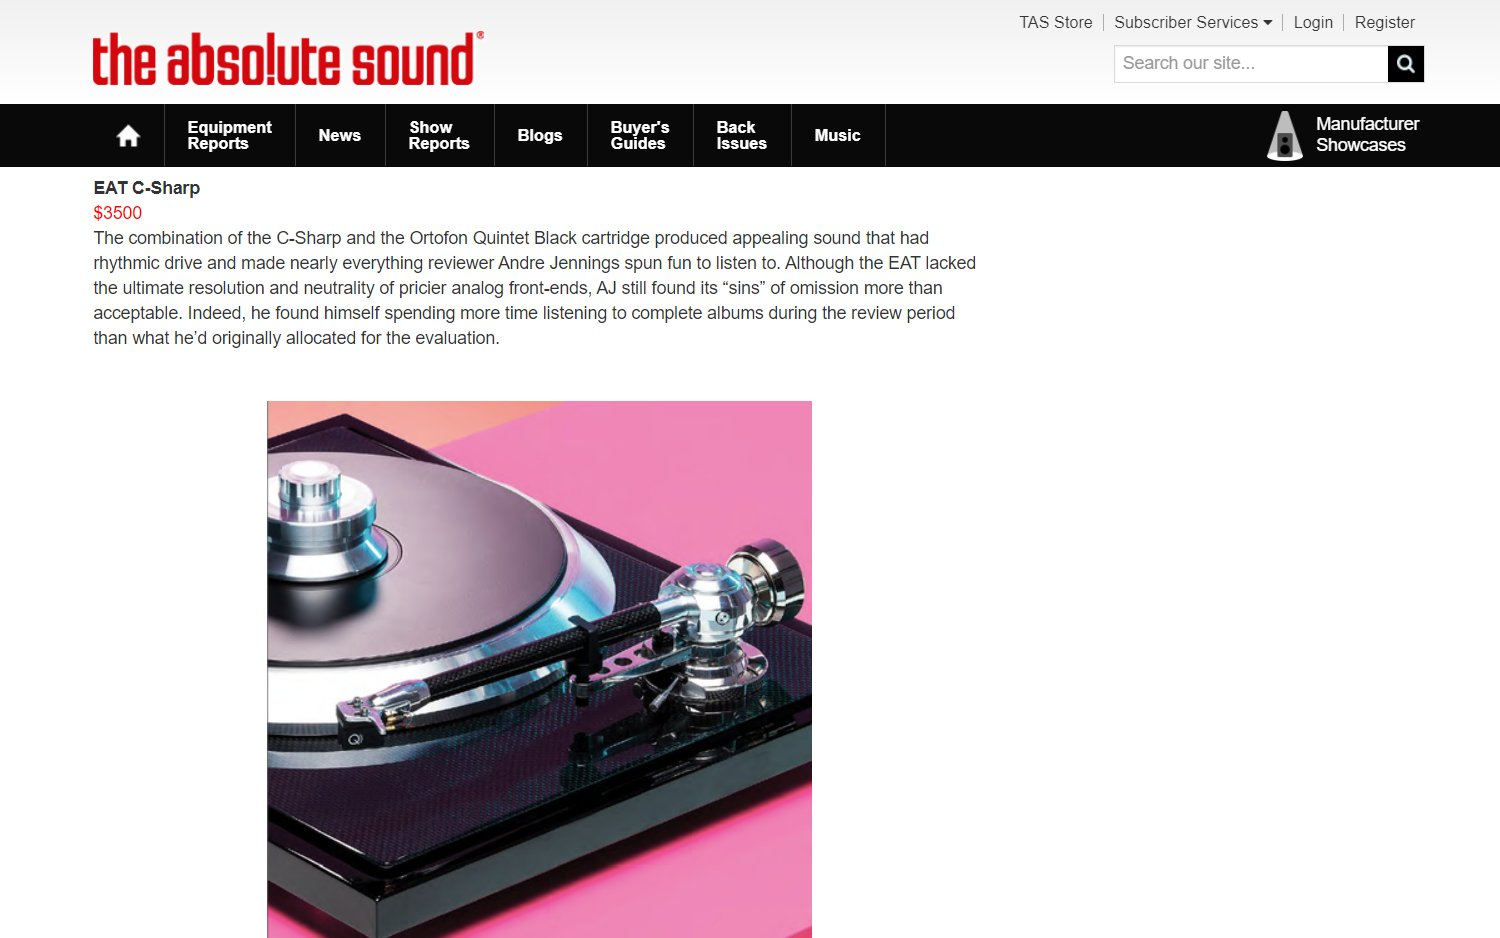 E.A.T. C-Sharp Editor's Choice Award by The Absolute Sound